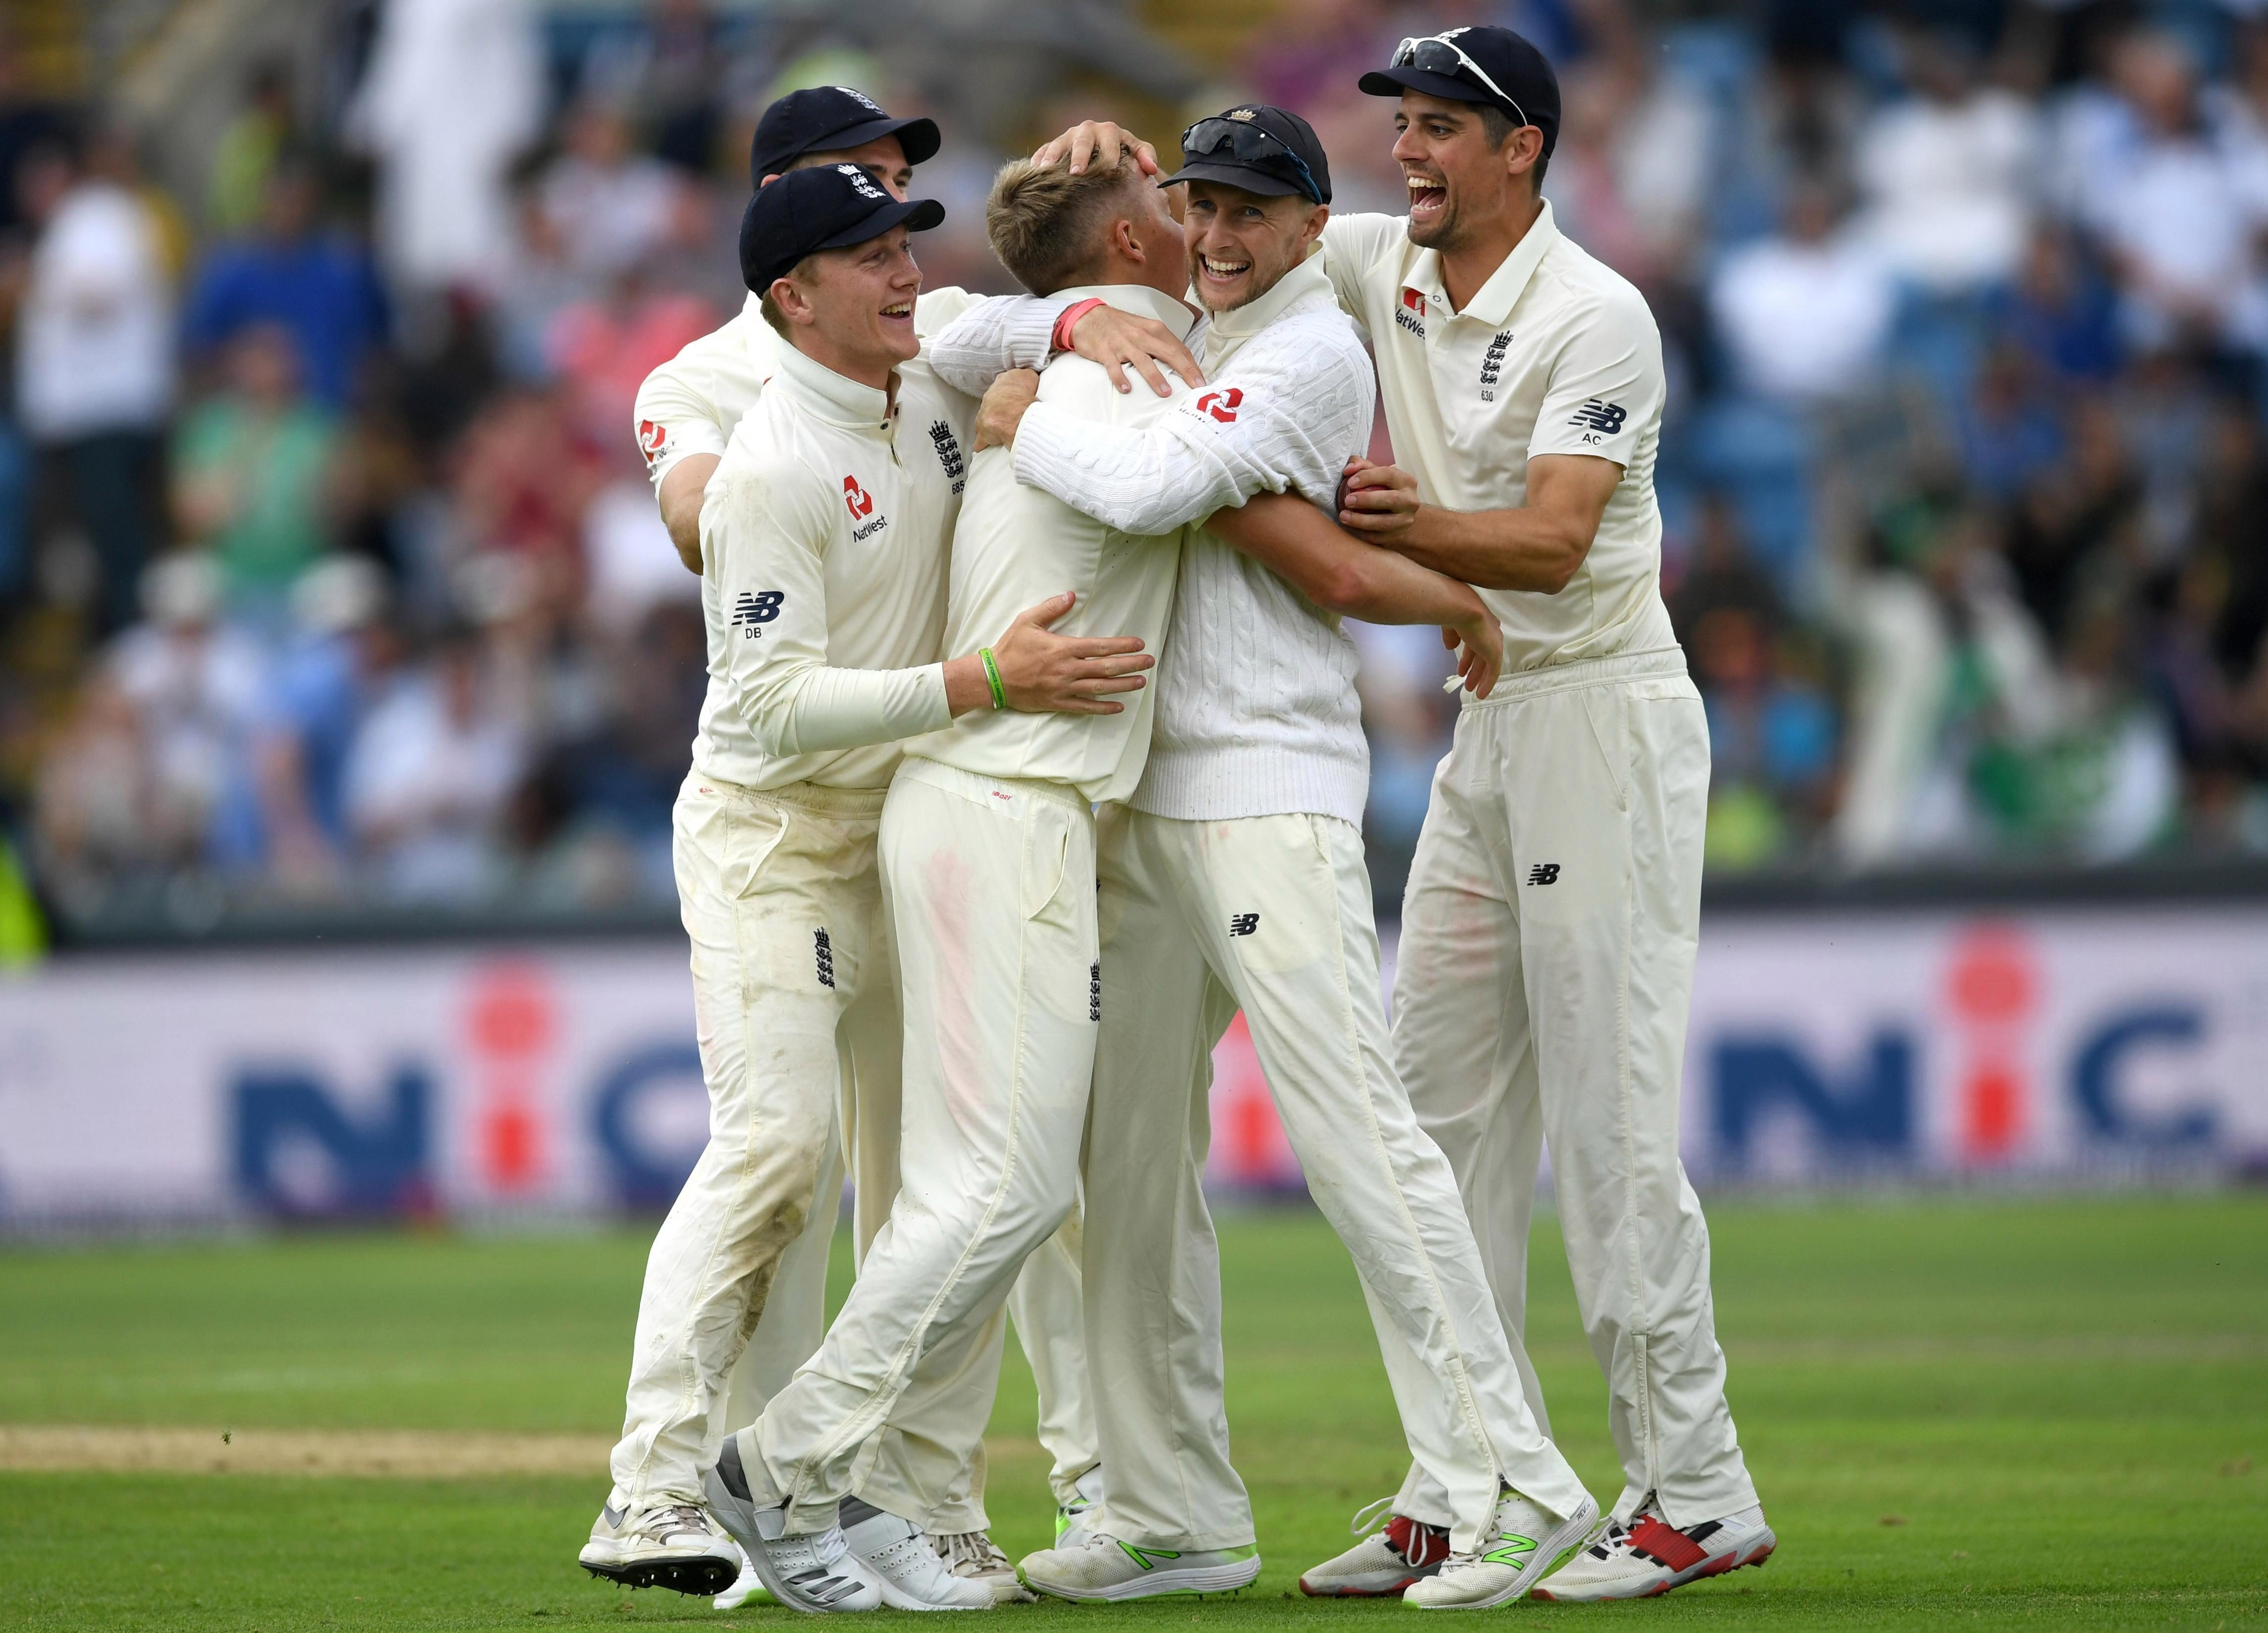 England take on India in a five-Test series that is the highlight of the international summer